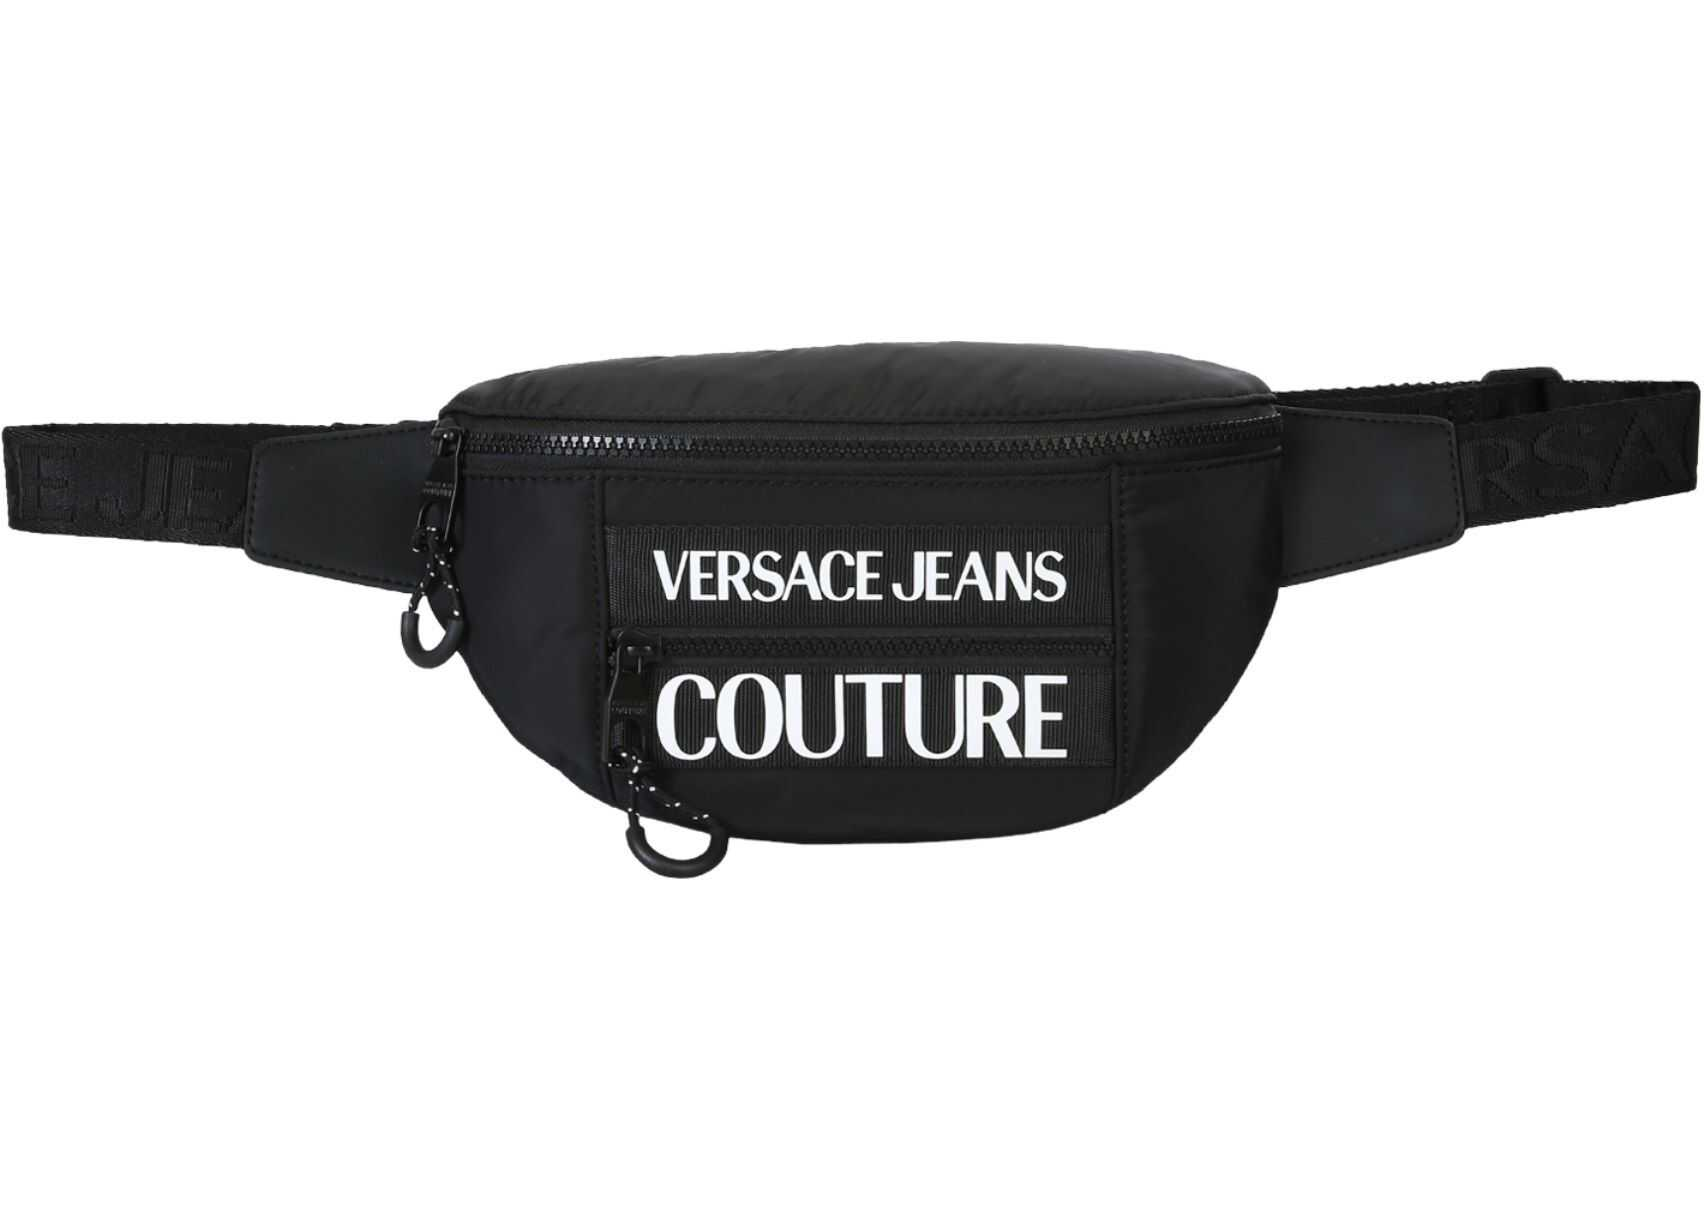 Versace Jeans Couture Sling Bag With Logo BLACK